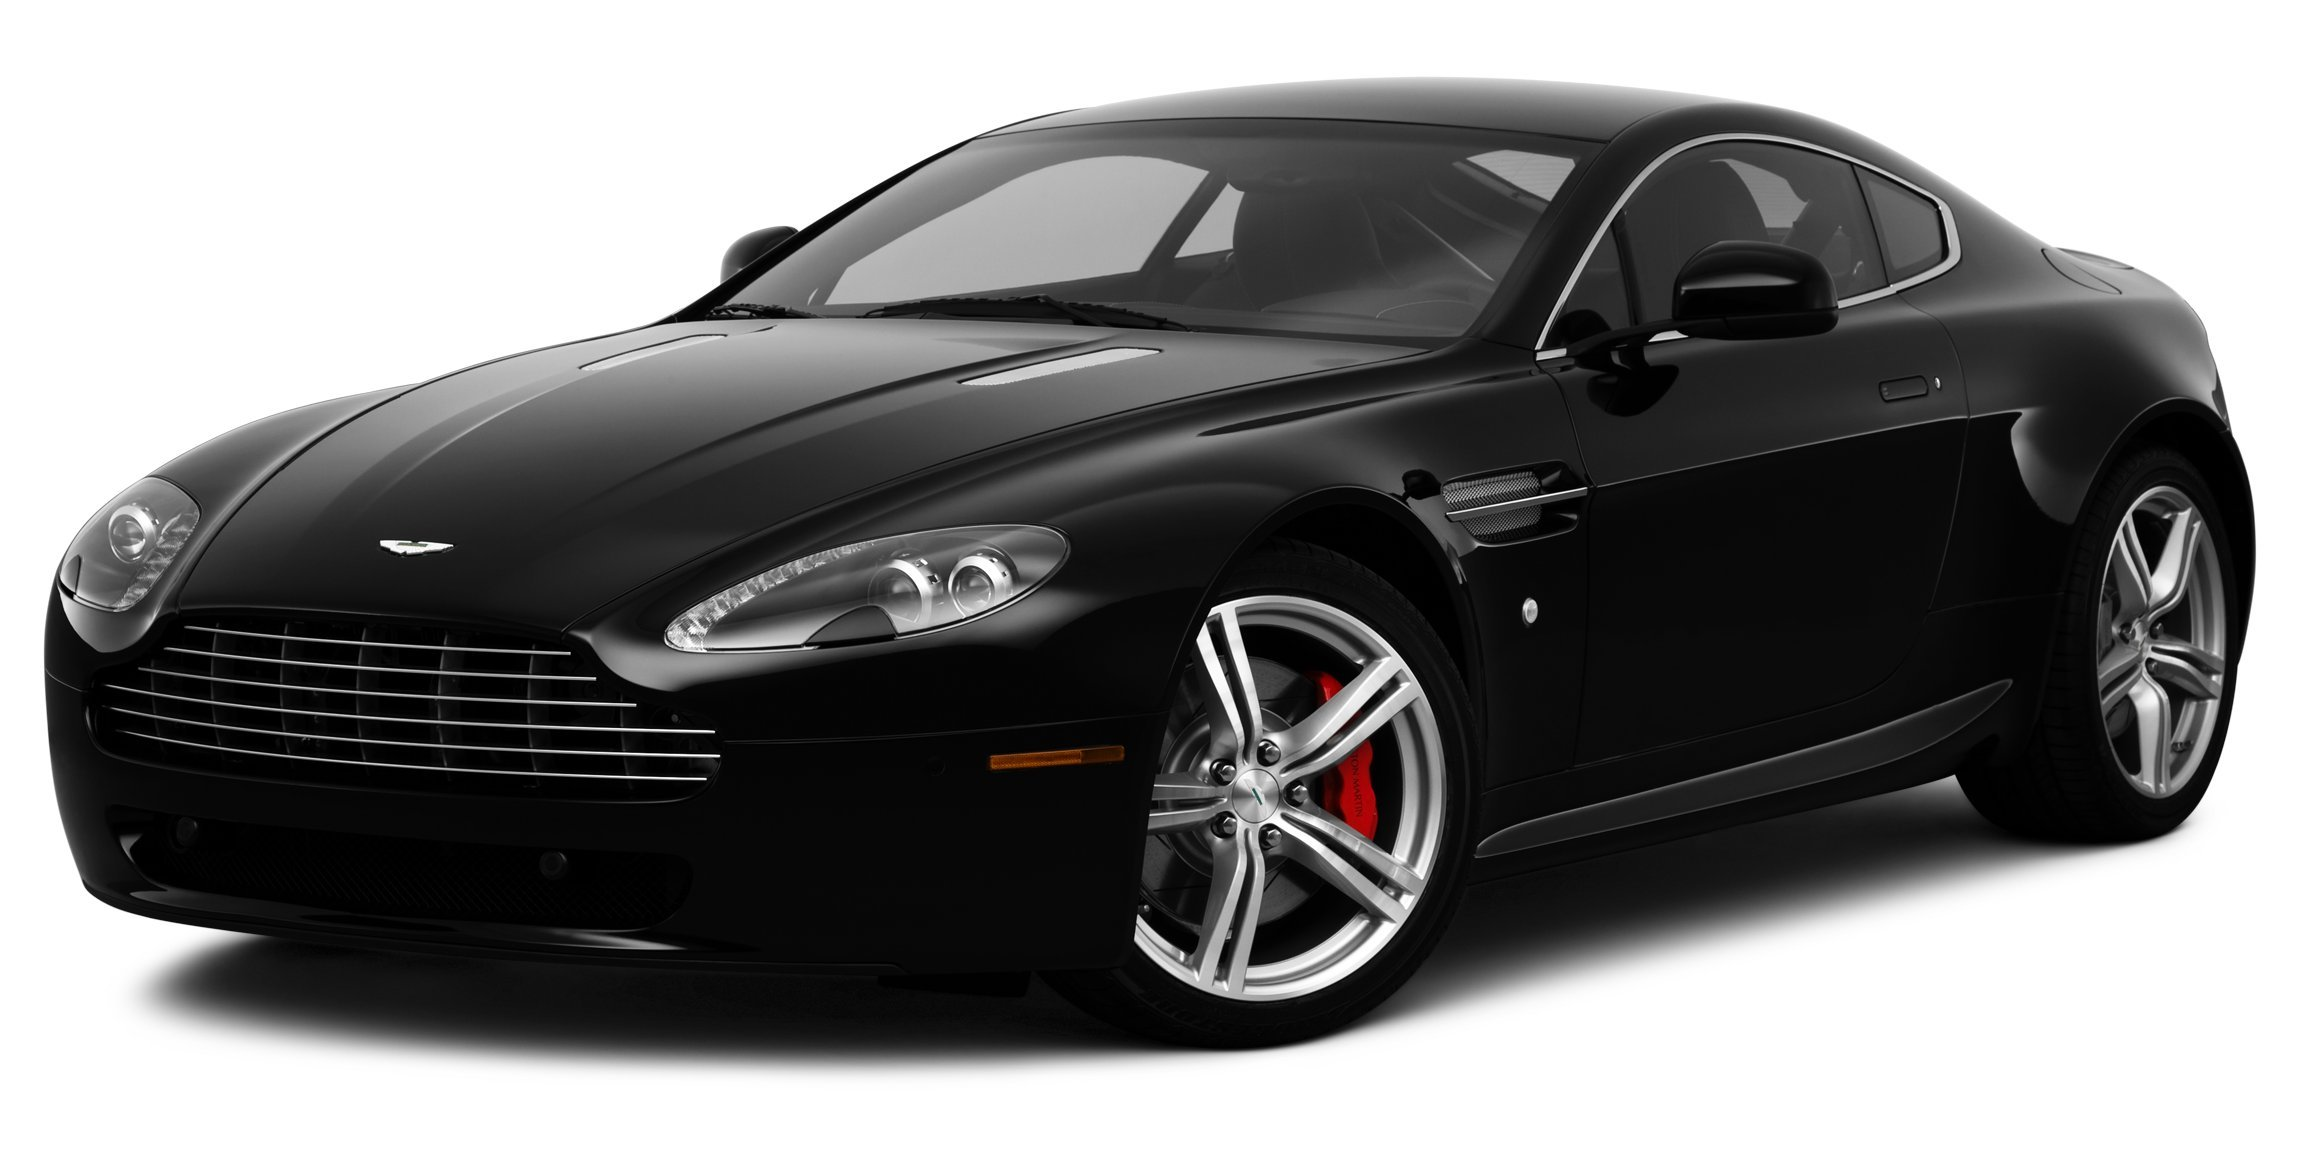 Amazon 2010 Aston Martin V8 Vantage Reviews and Specs